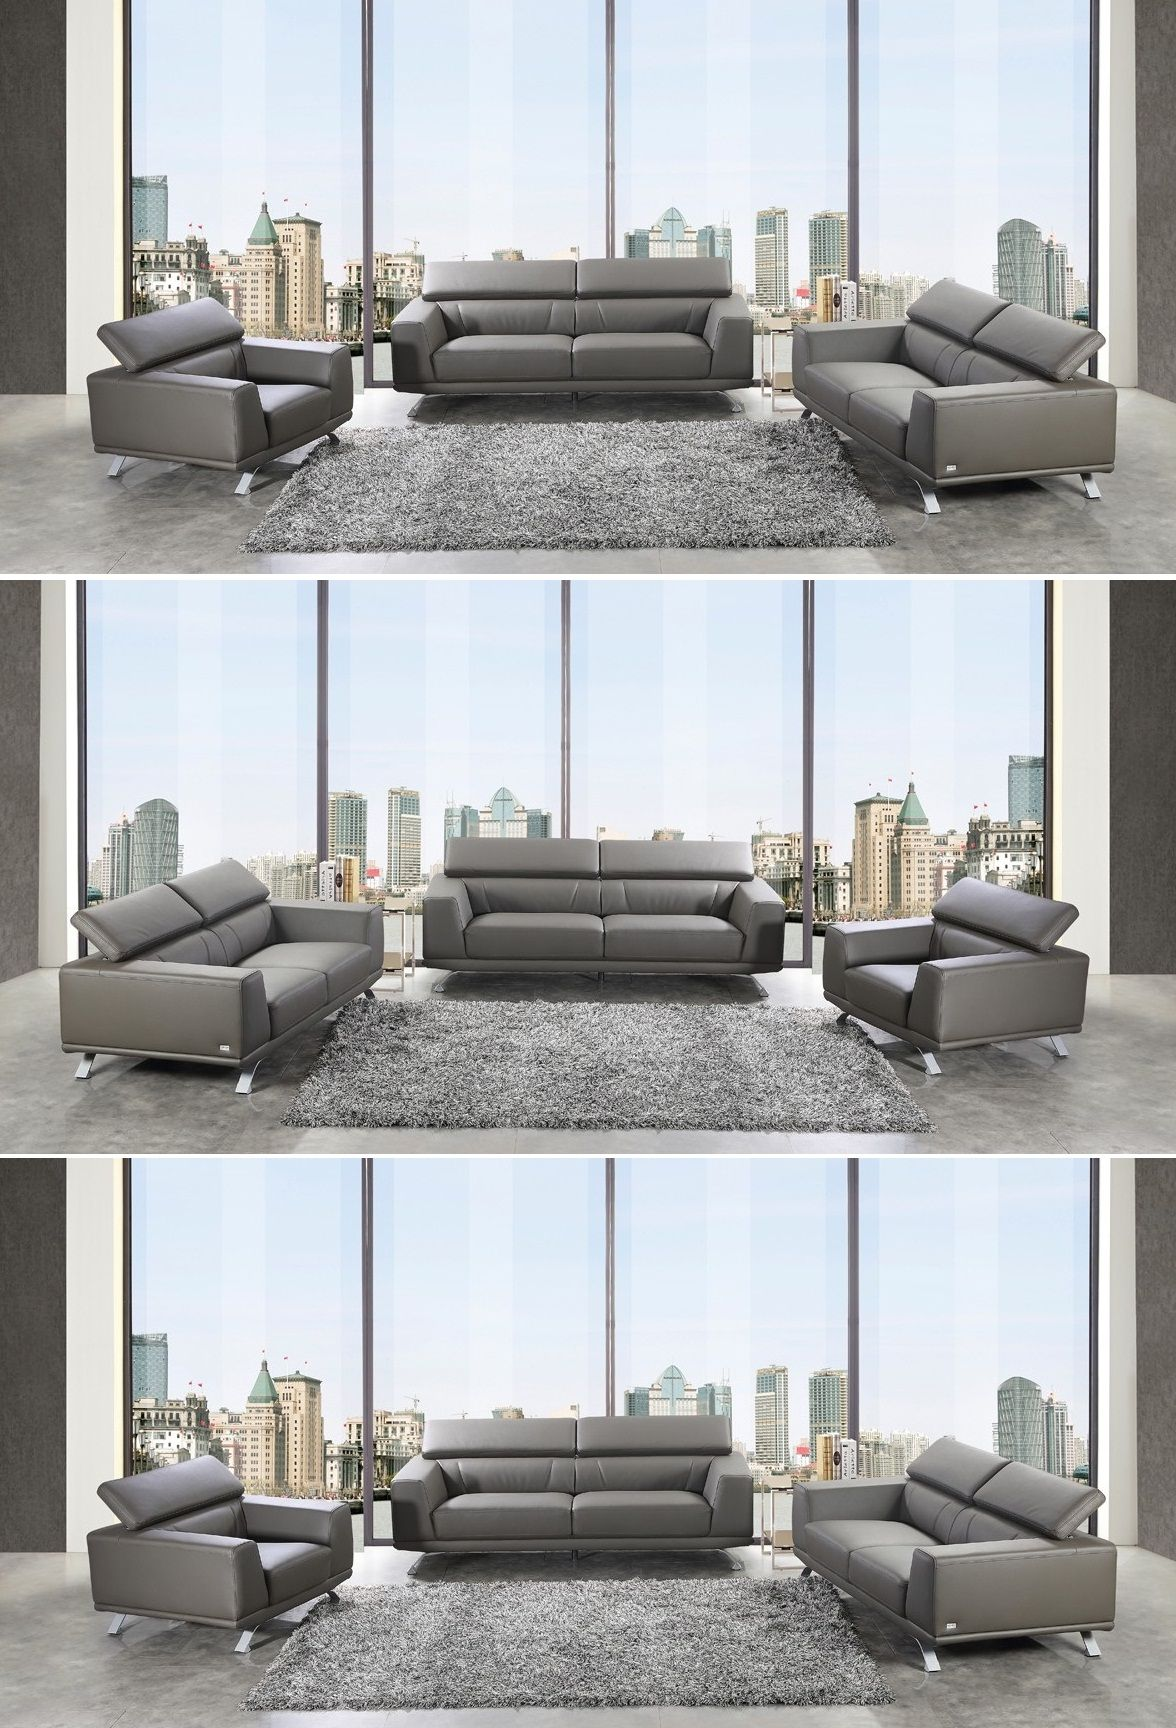 Coaster Joaquin Grey Leather Sectional Home Furniture Living Room Furniture Sofas Loveseats Grey Sectional Sofa Grey Leather Sectional Furniture